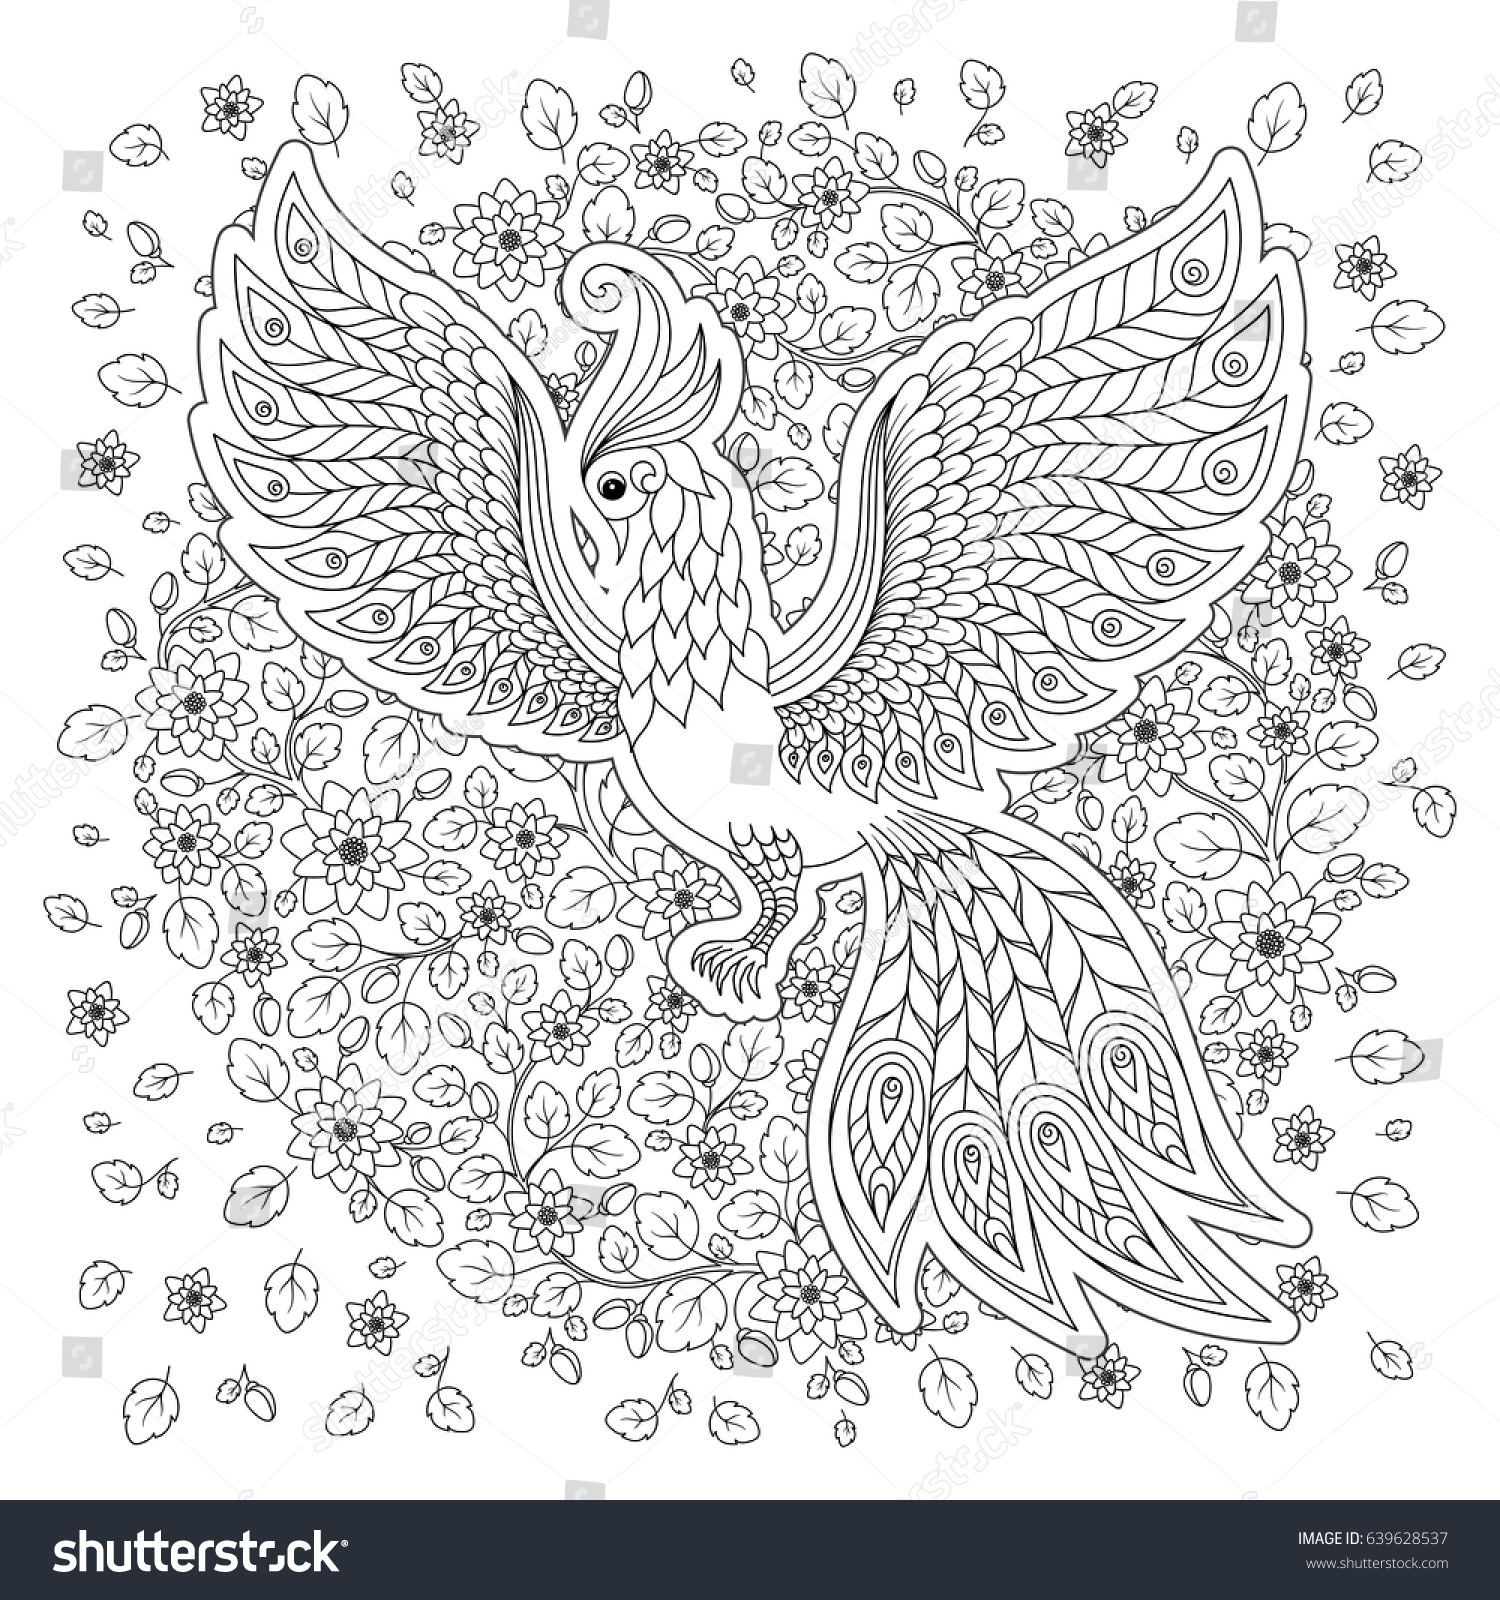 Anti stress colouring book asda - Exotic Bird Fantastic Flowers Leaves Firebird For Anti Stress Coloring Page With High